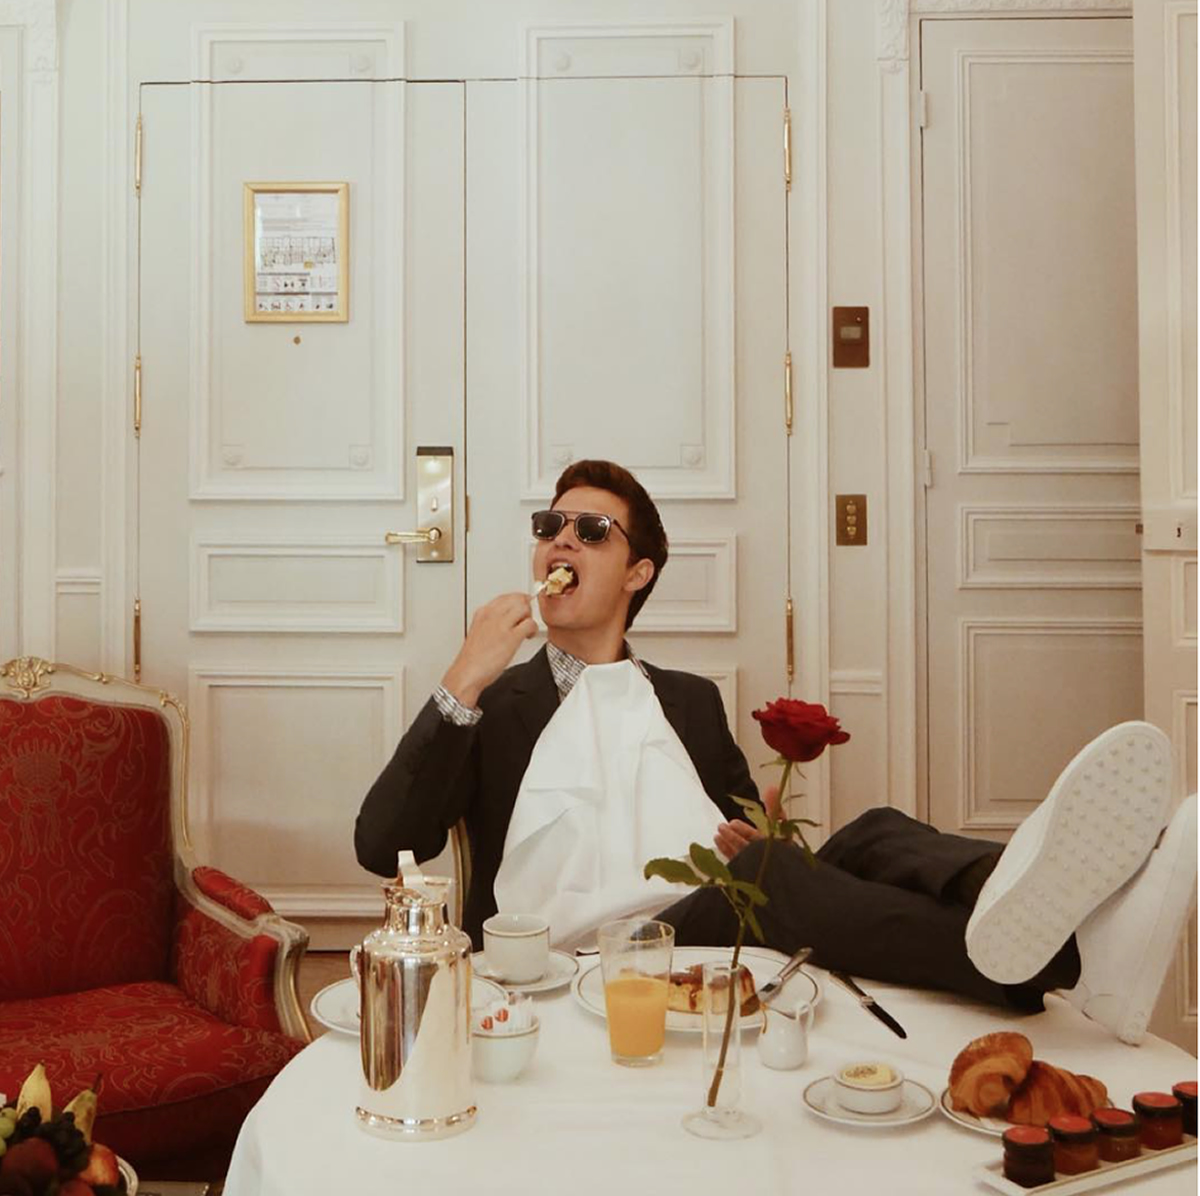 Plaza Athenee Paris Room Service Menu